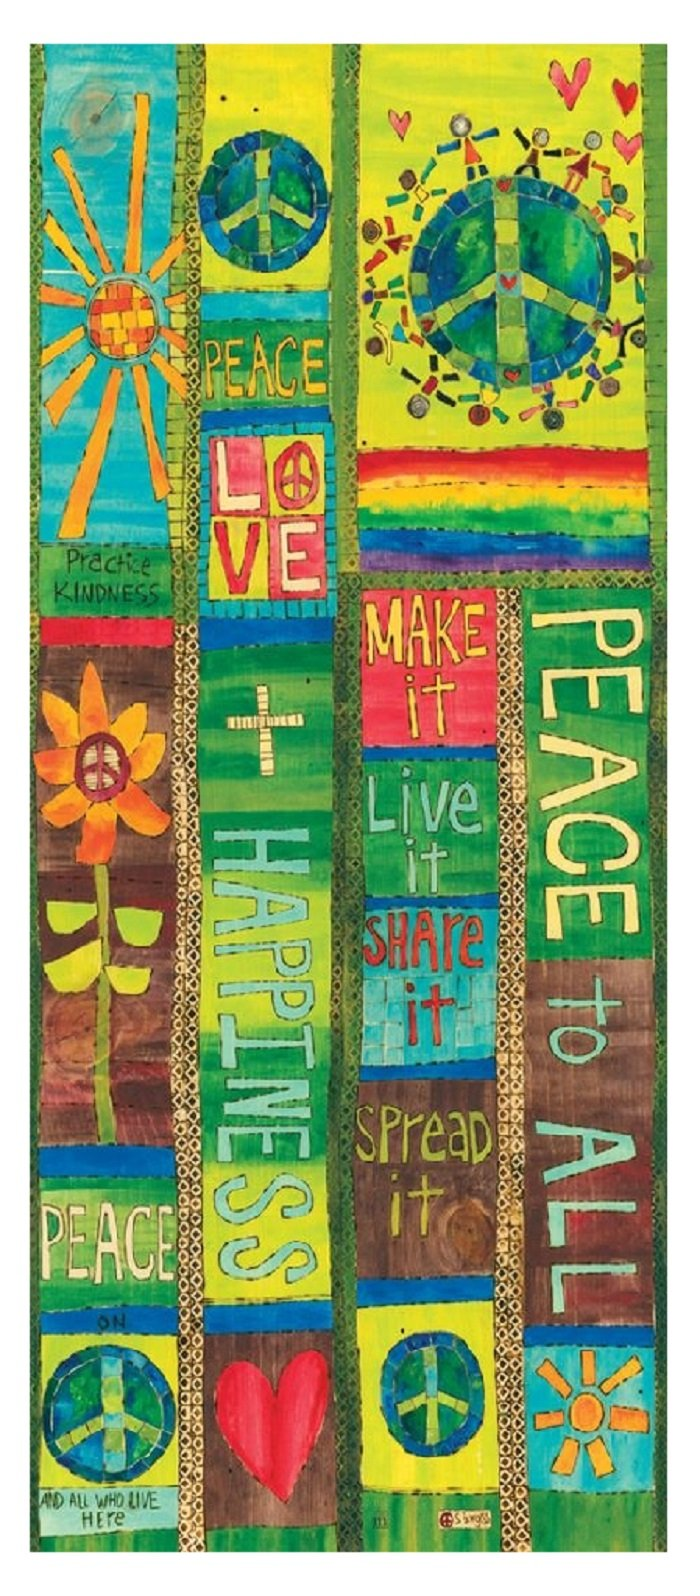 Studio M Garden Outdoor Decor Stephanie Burgess Art Pole (Peace and Love) by Studio M